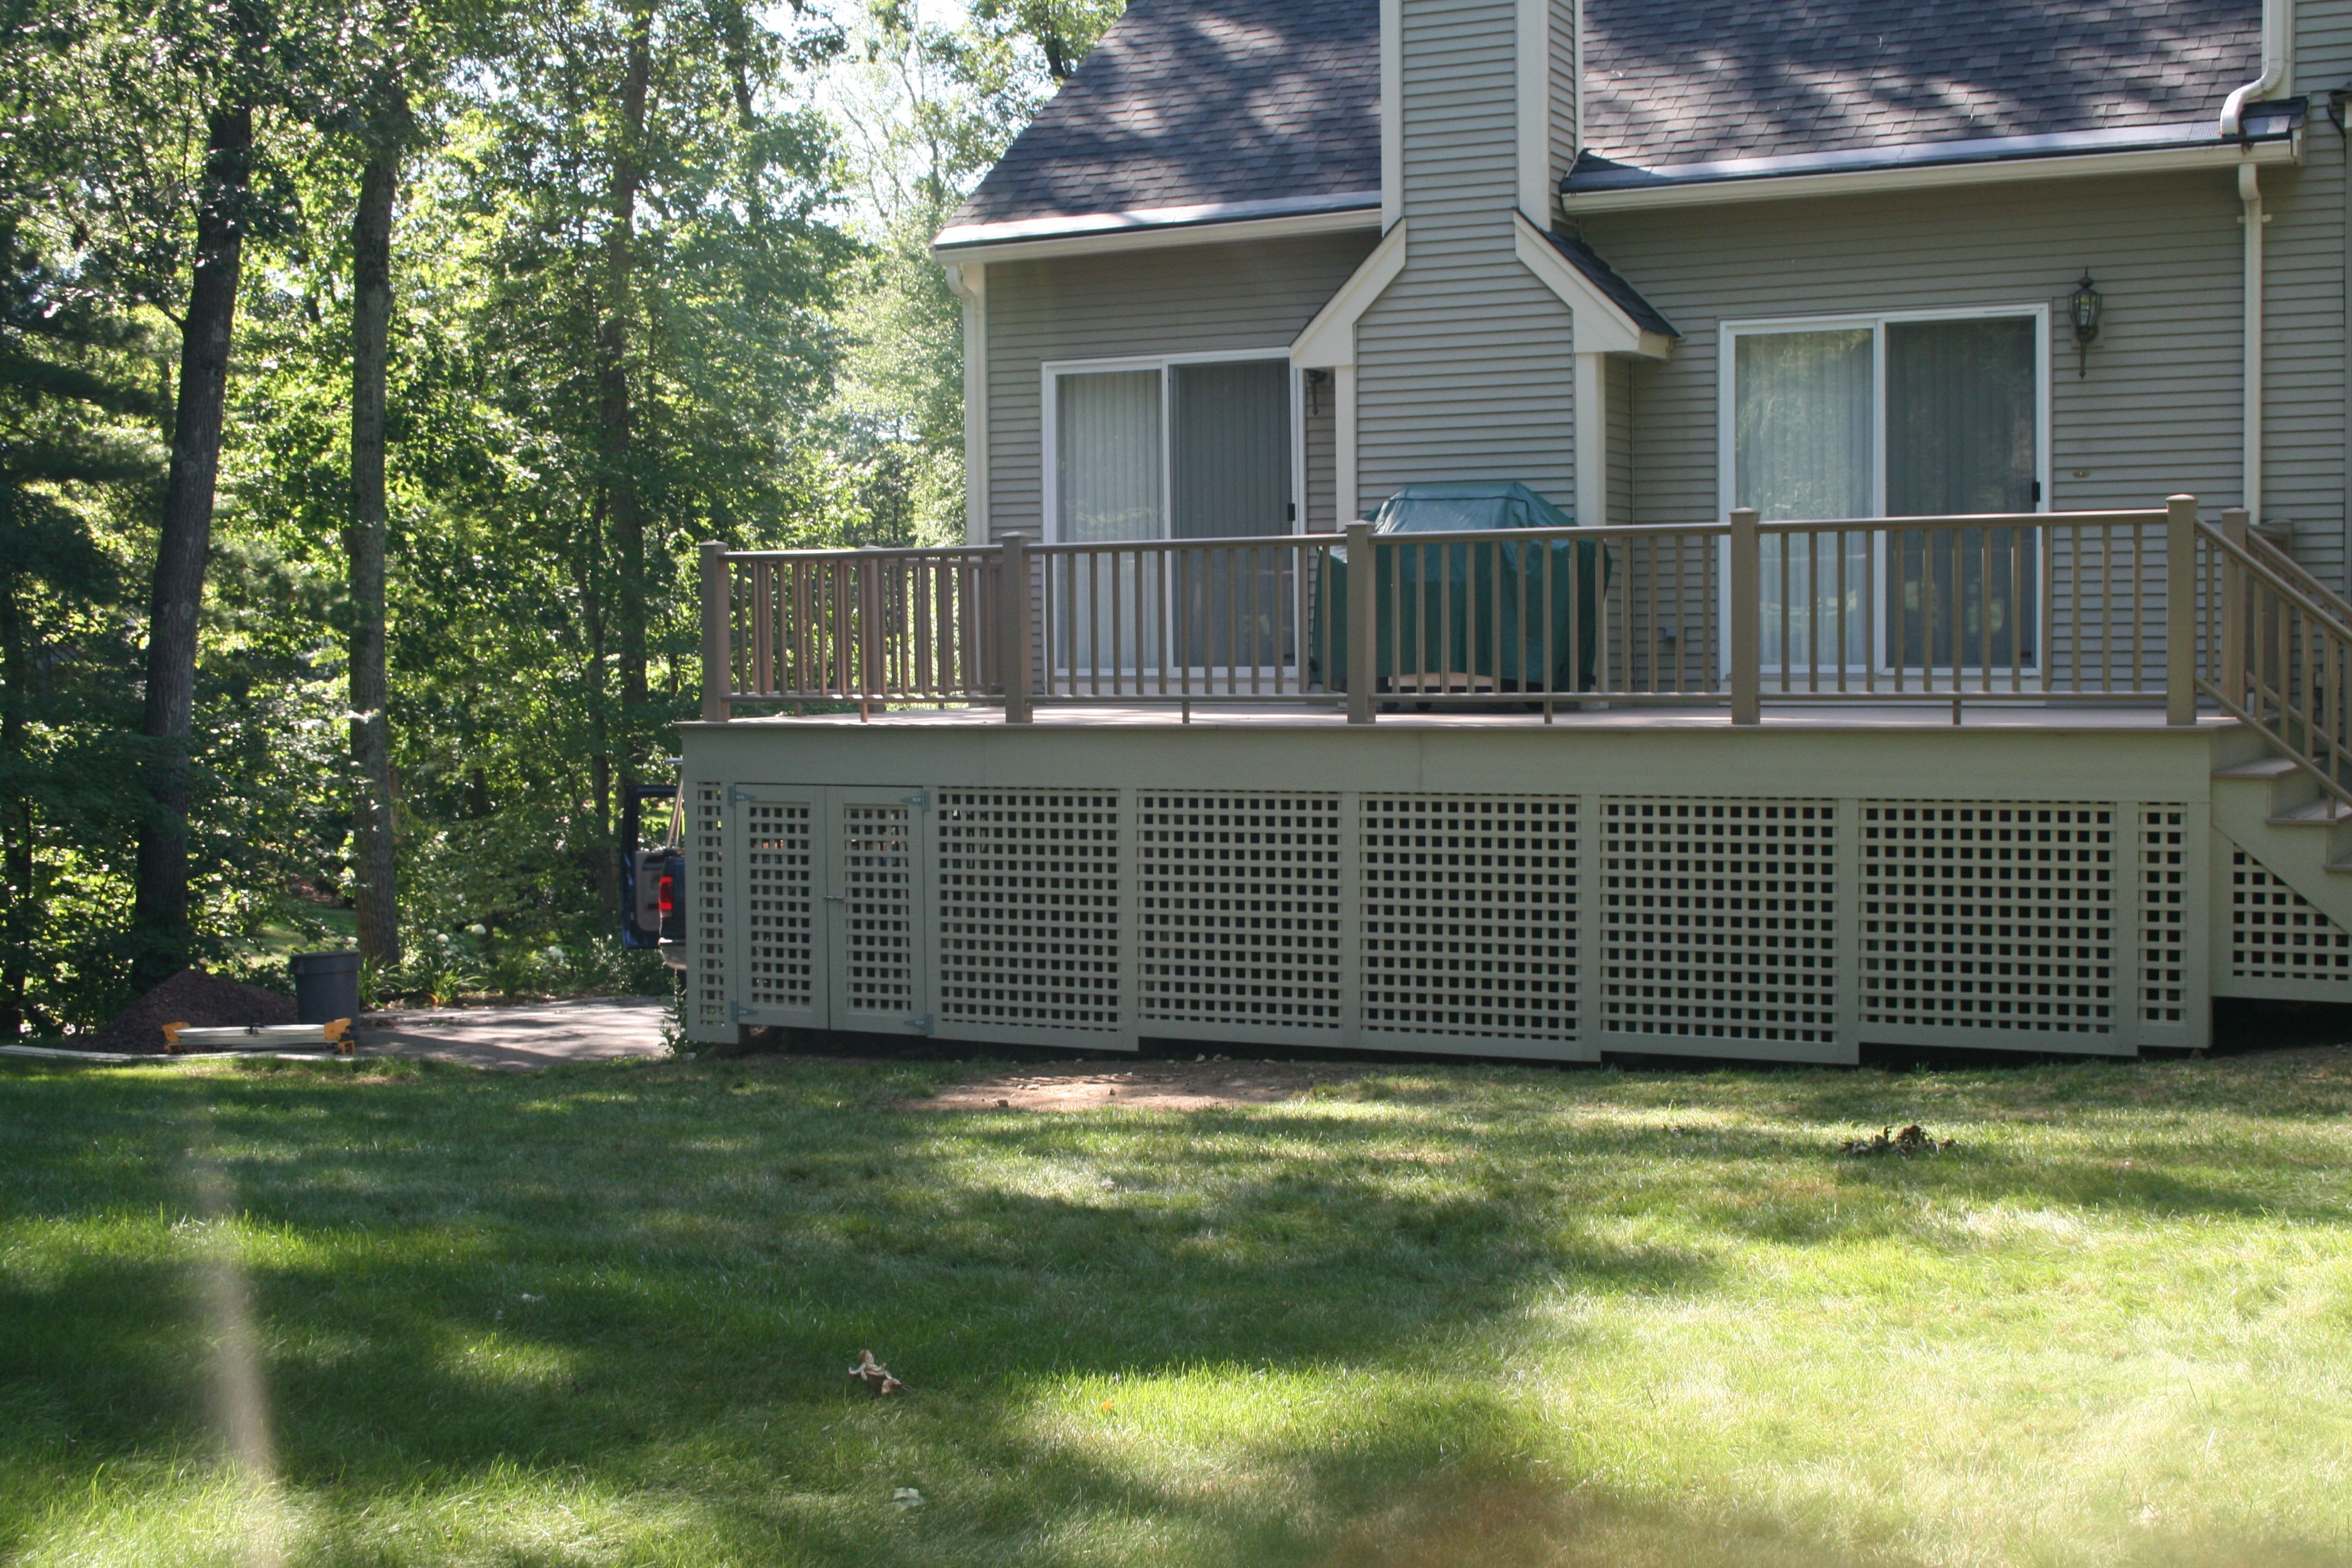 What To Use To Enclose The Area Under Your Deck Lattice Deck Decks And Porches Deck Designs Backyard